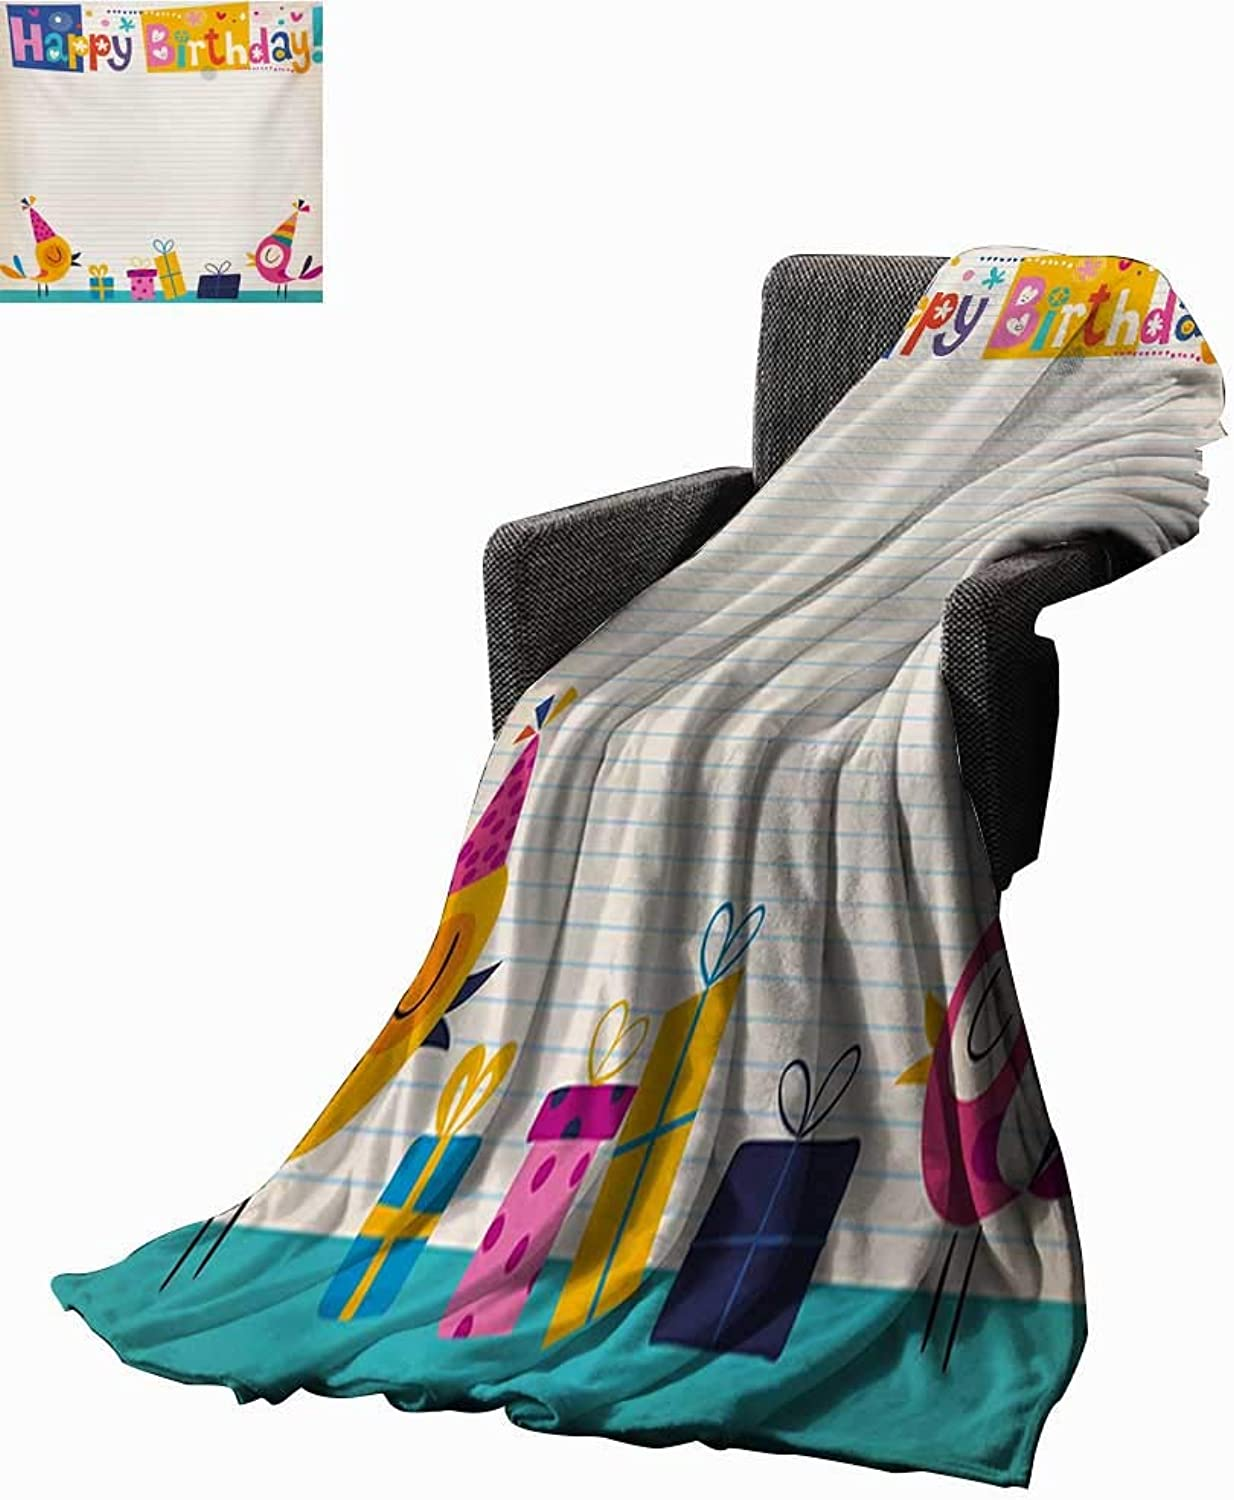 Anyangeight Kids Birthday Throw Blanket Cartoon colorful Image Party Birds with Cones Surprise Boxes Fun Happiness,Super Soft and Comfortable,Suitable for Sofas,Chairs,beds